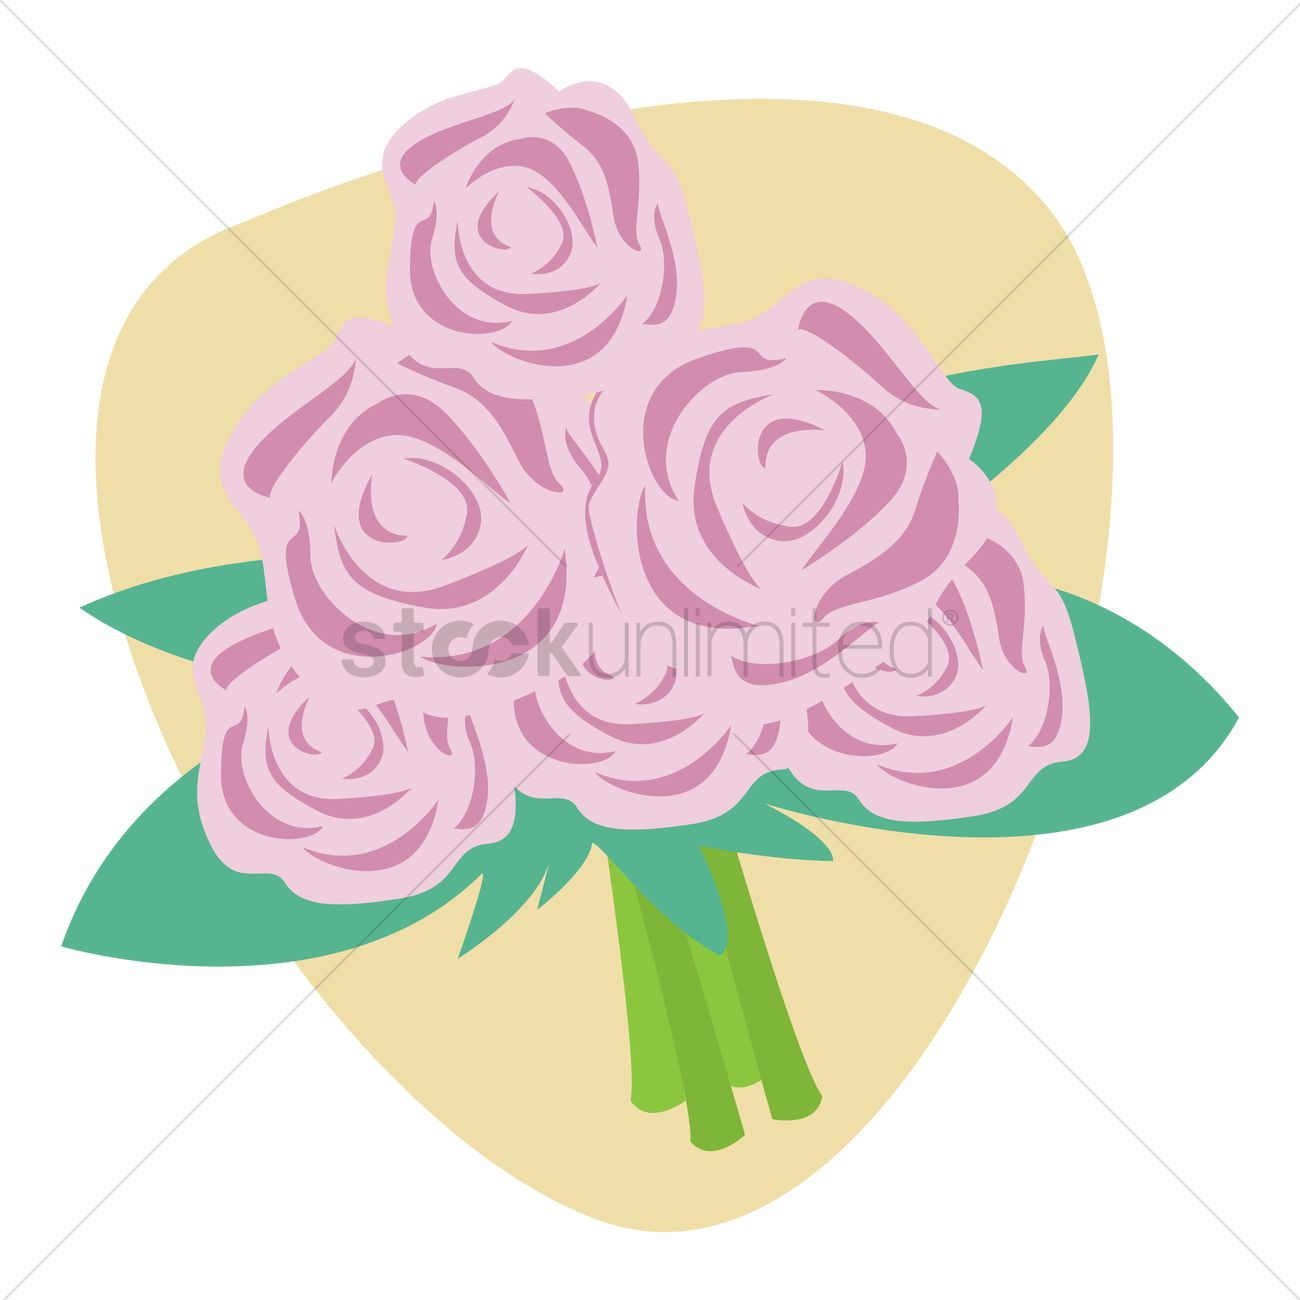 Flower Bouquet Vector Image 1328734 Stockunlimited